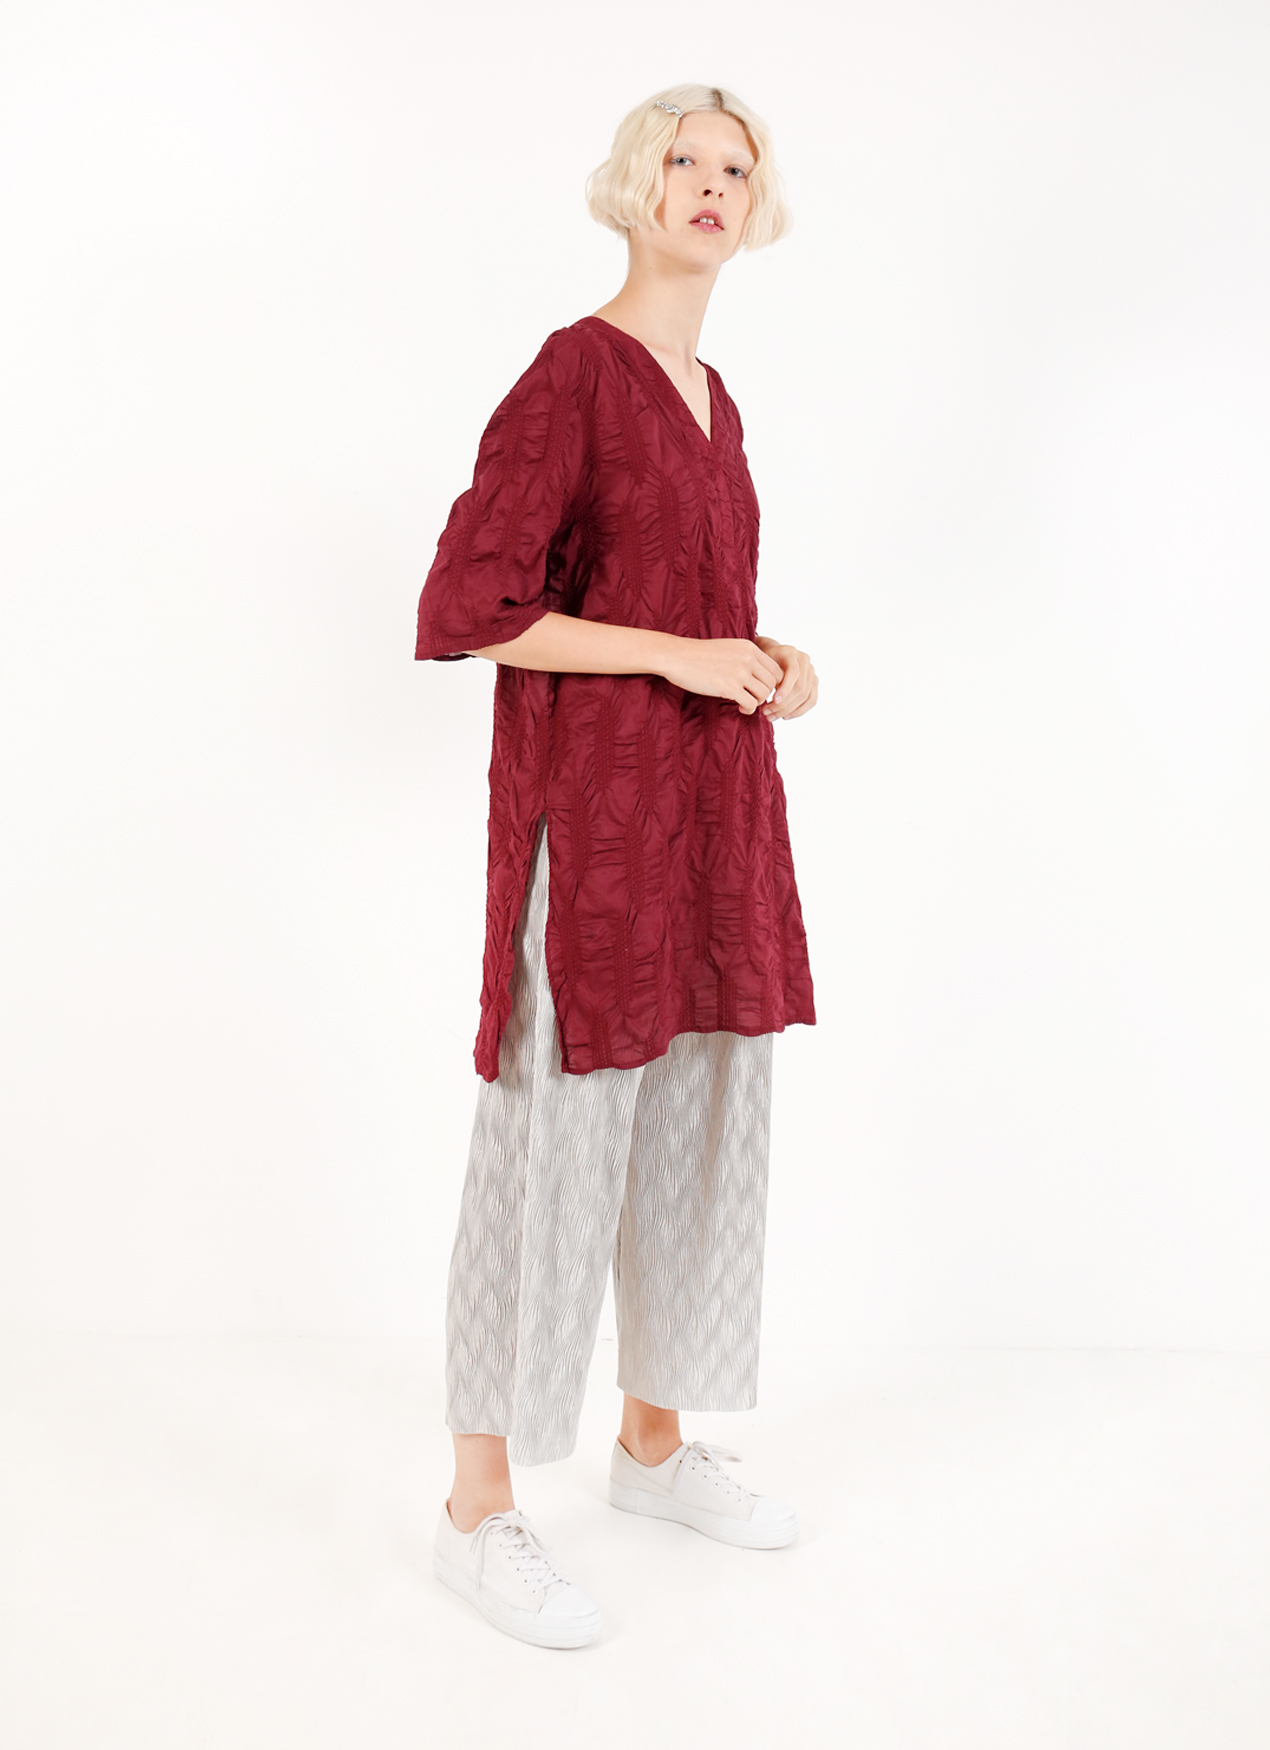 BOWN Wes Top - Red